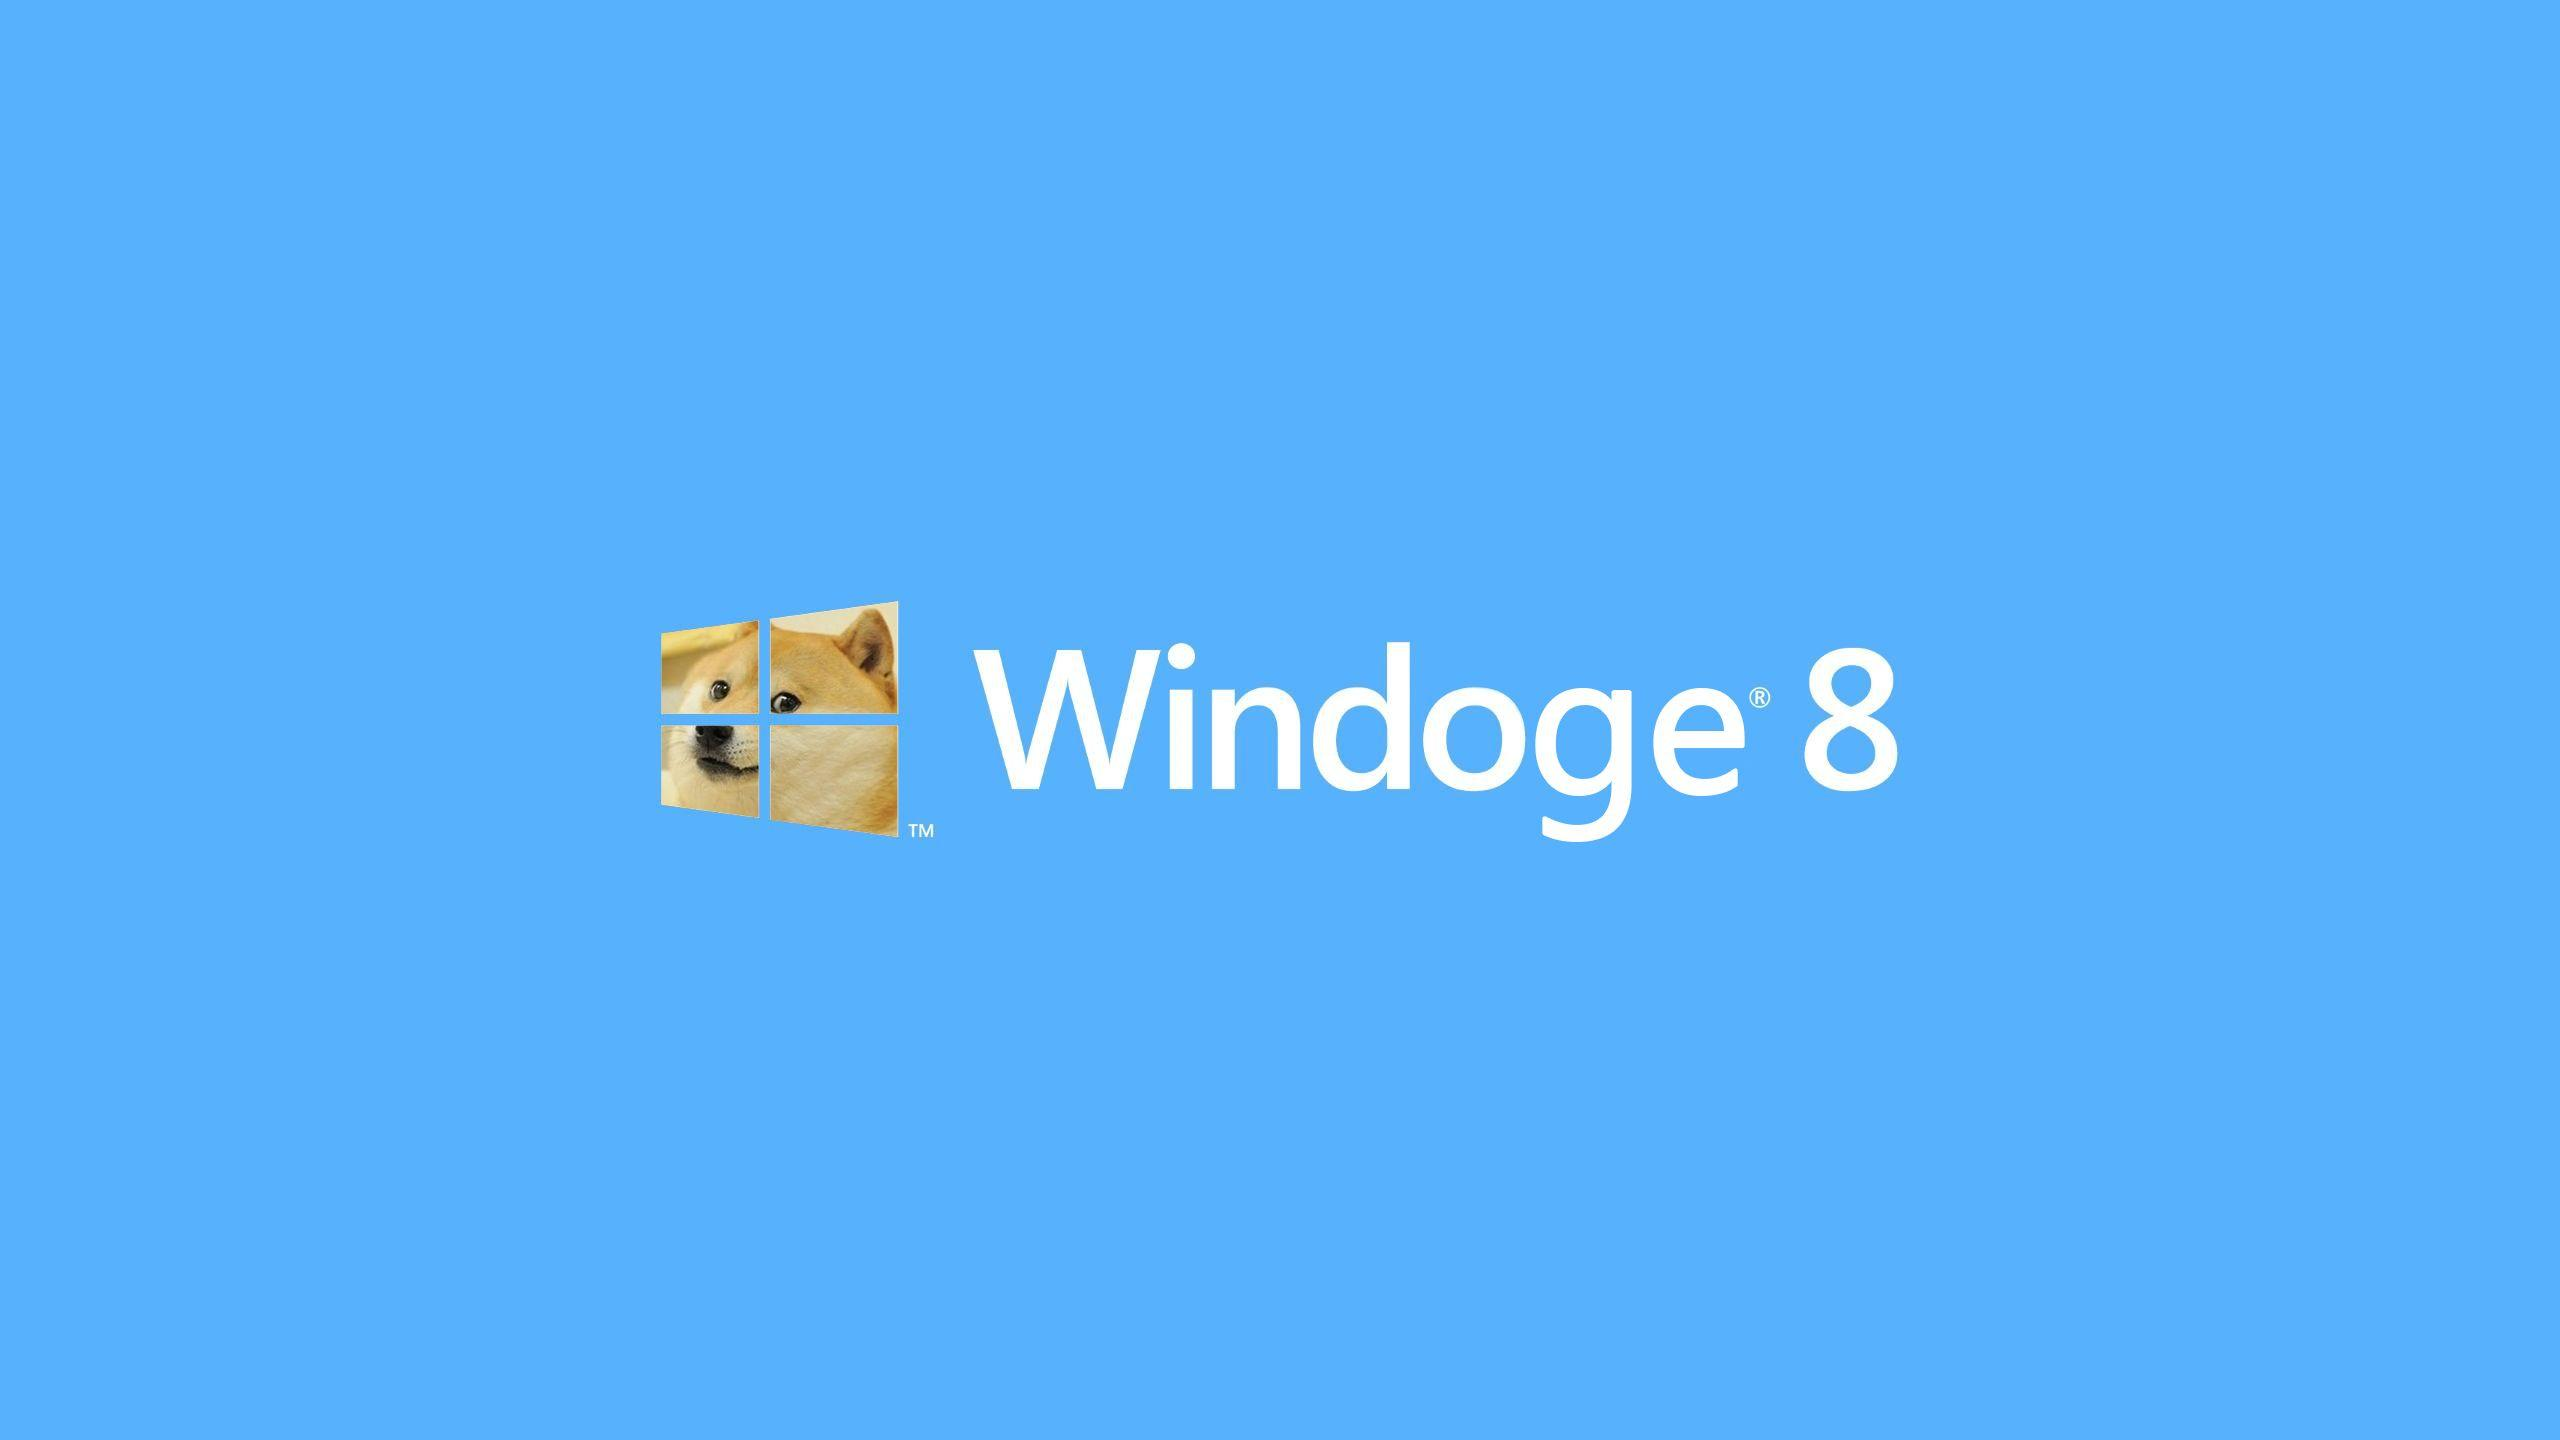 Windoge 8 DOGE Meme Wallpaper free desktop backgrounds and wallpapers